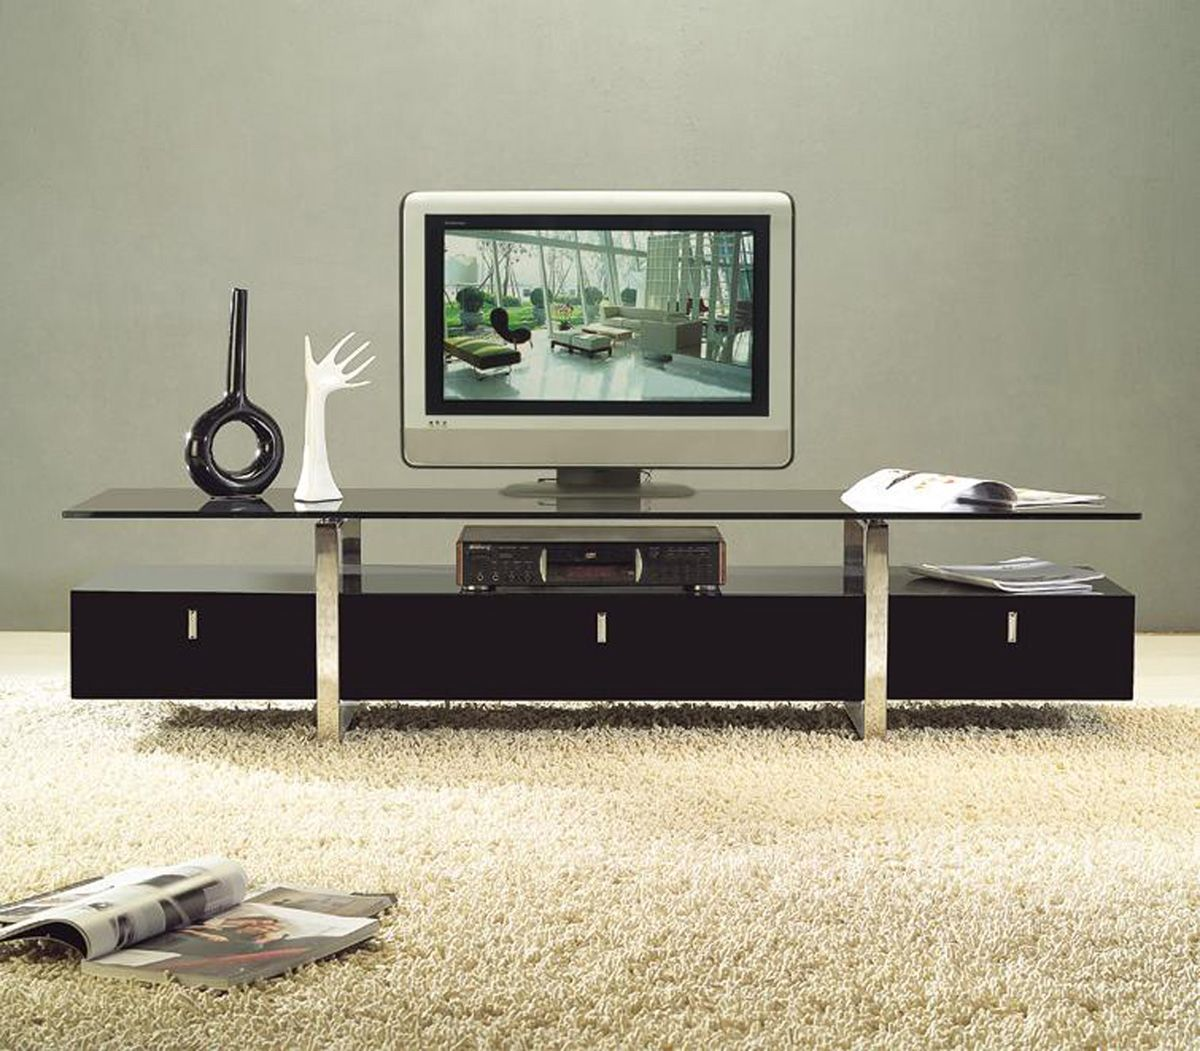 television tables living room furniture. TV stand ideas modern for living room  bedroom small spaces flat screen tv entertainment centers Swish Flat Lcd Tv Stands